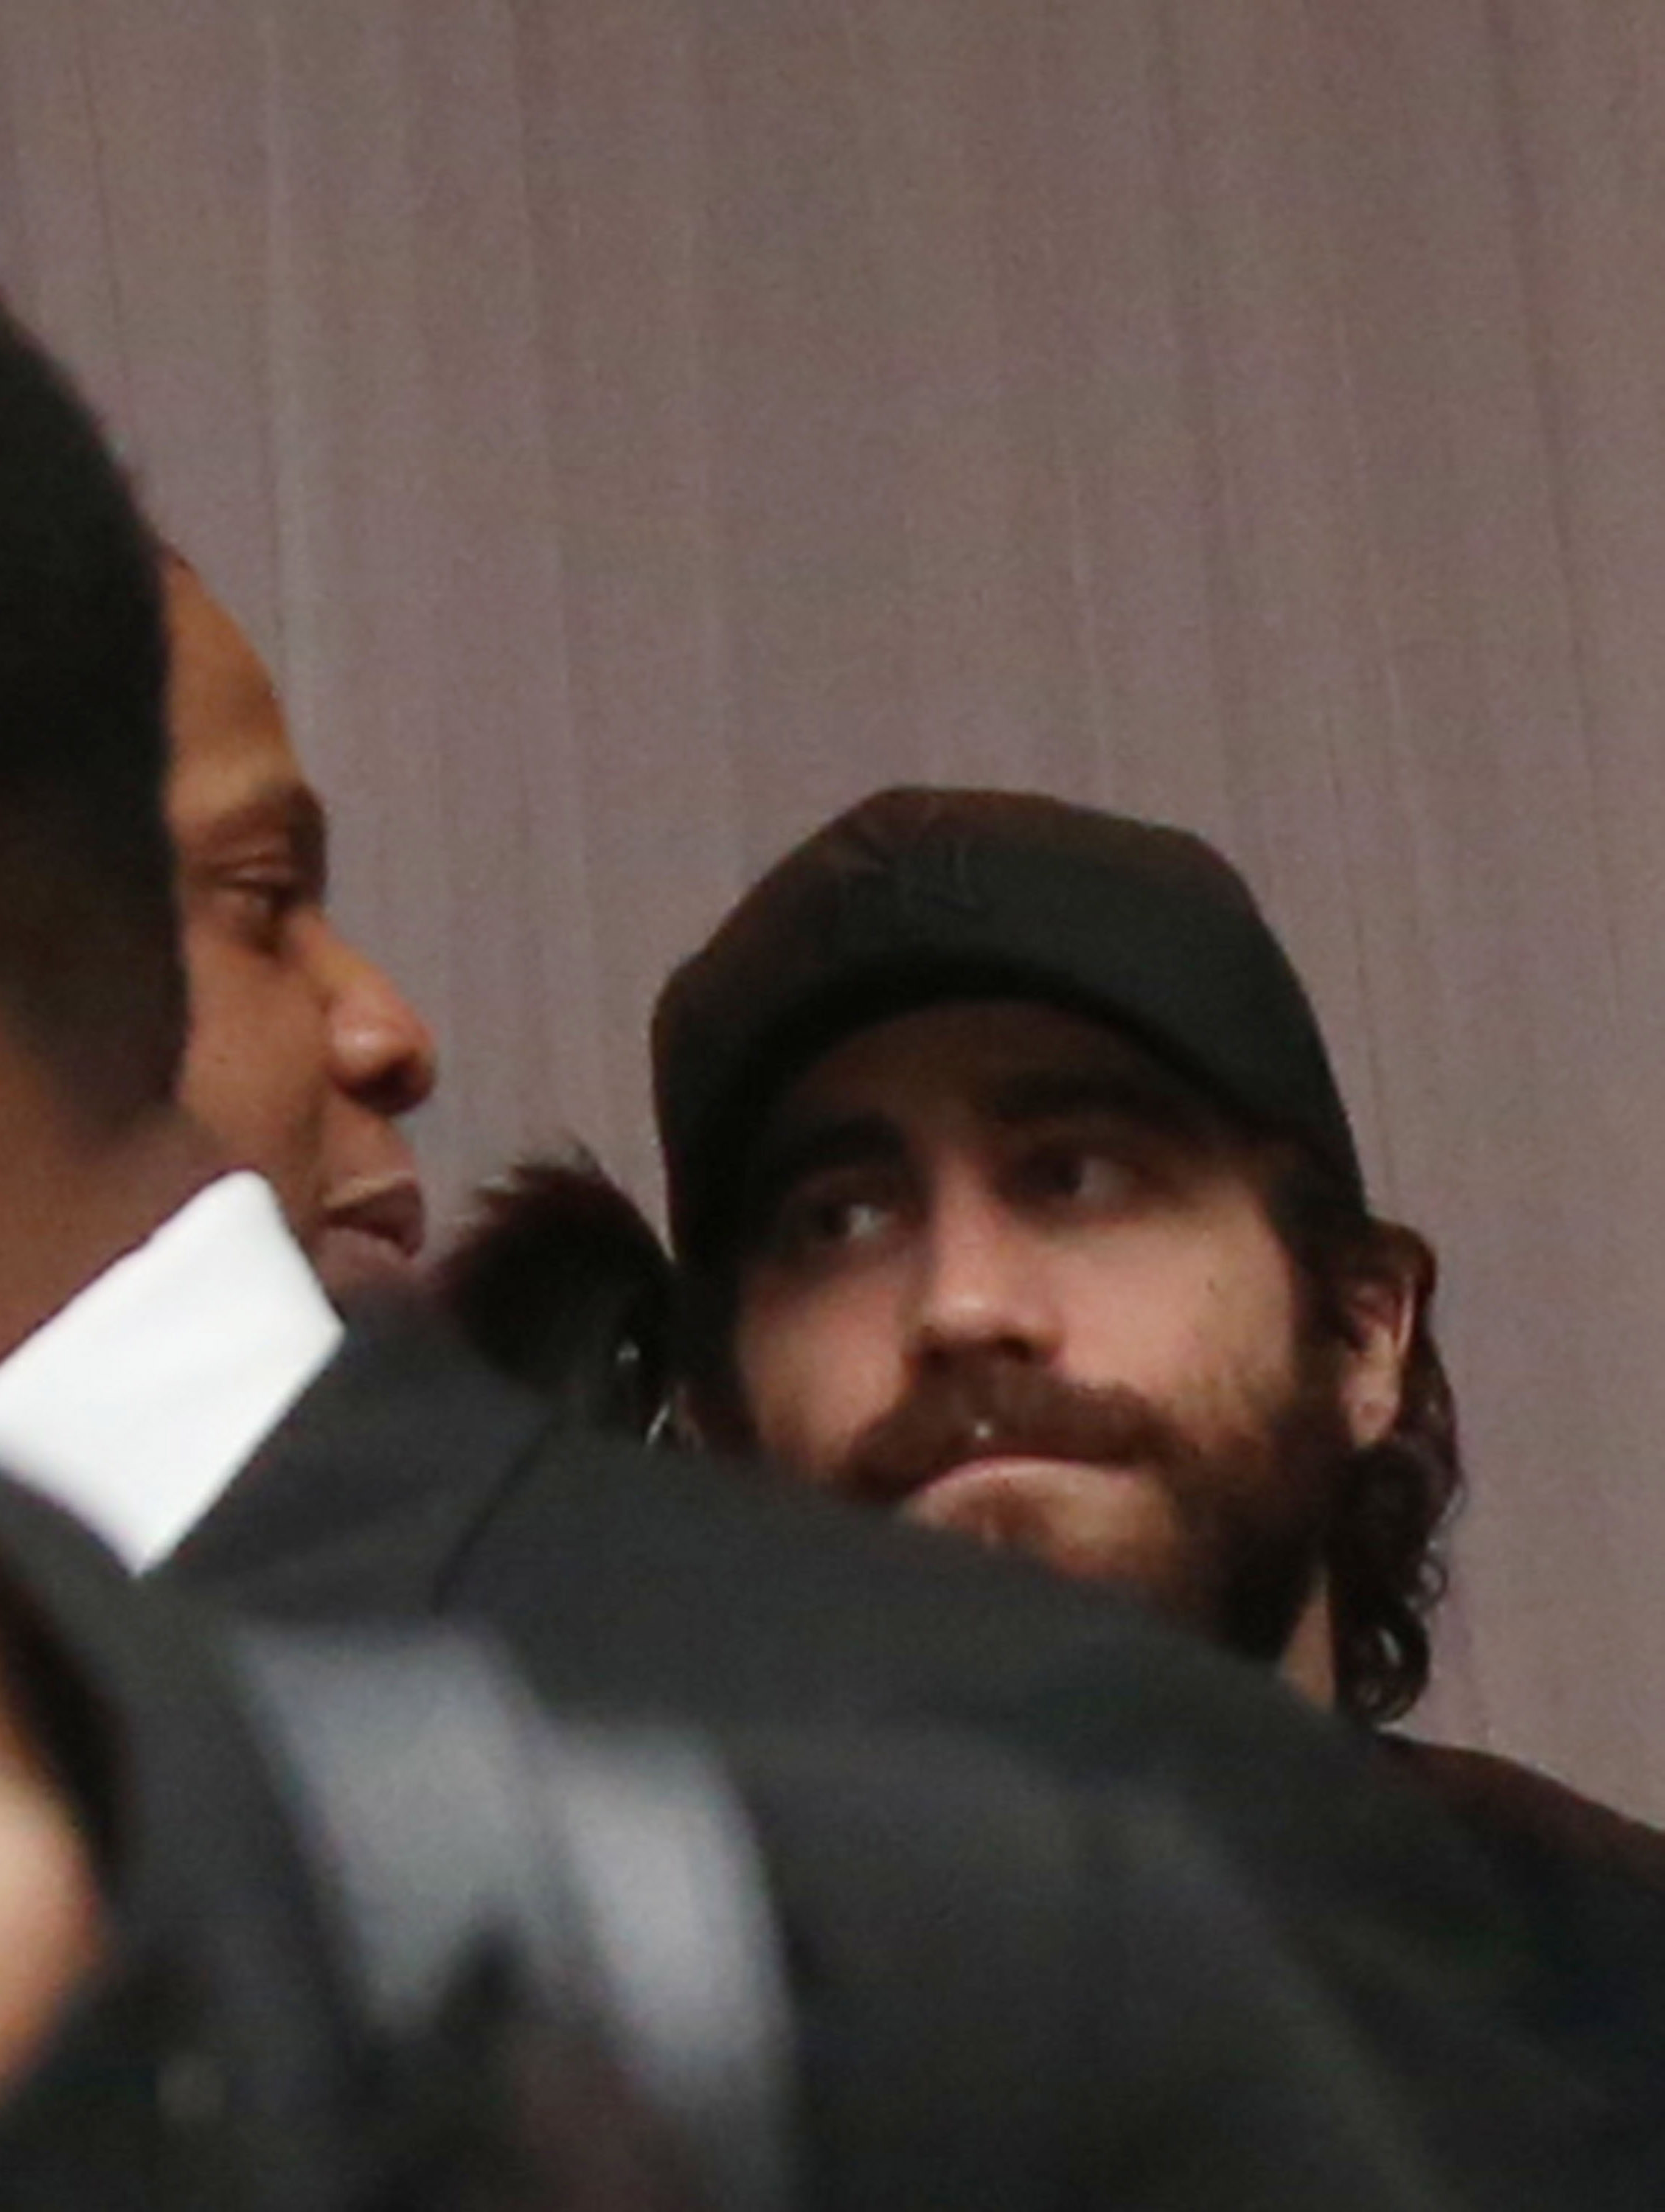 Jake Gyllenhaal hung out with Jay-Z at Brooklyn's Barclays Center.